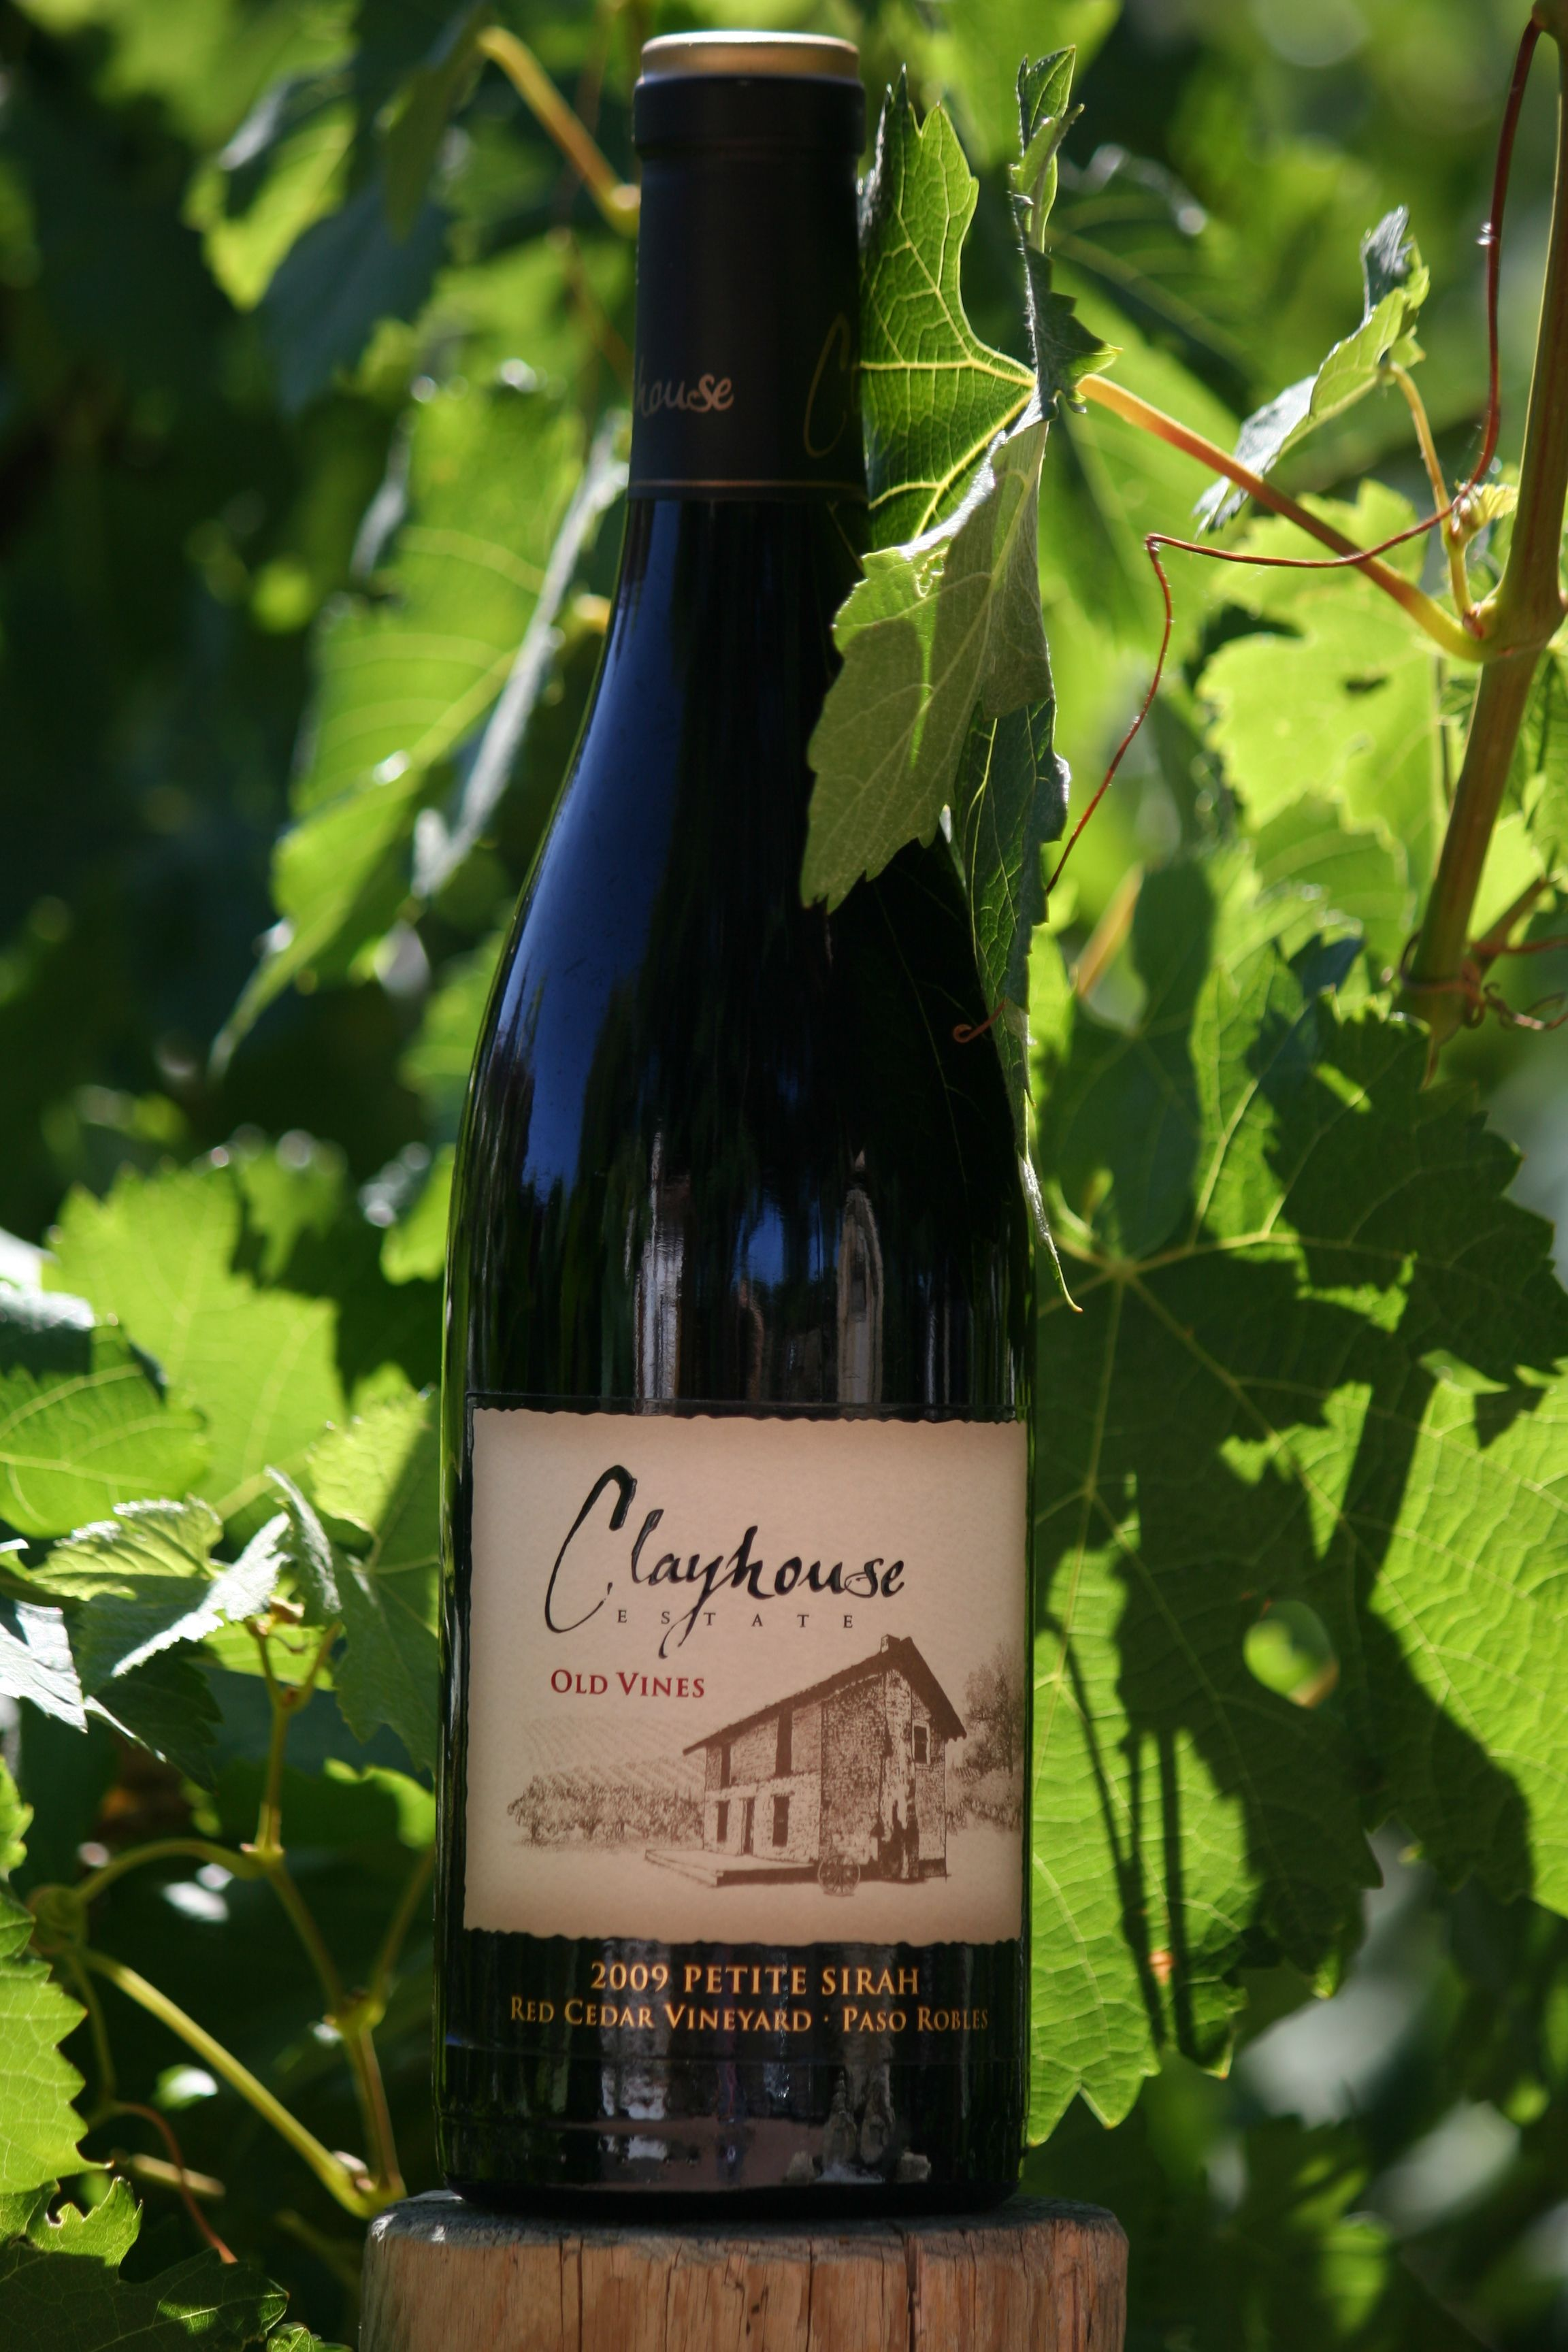 Clayhouse Wines 2009 Old Vines Petite Syrah, Paso Robles